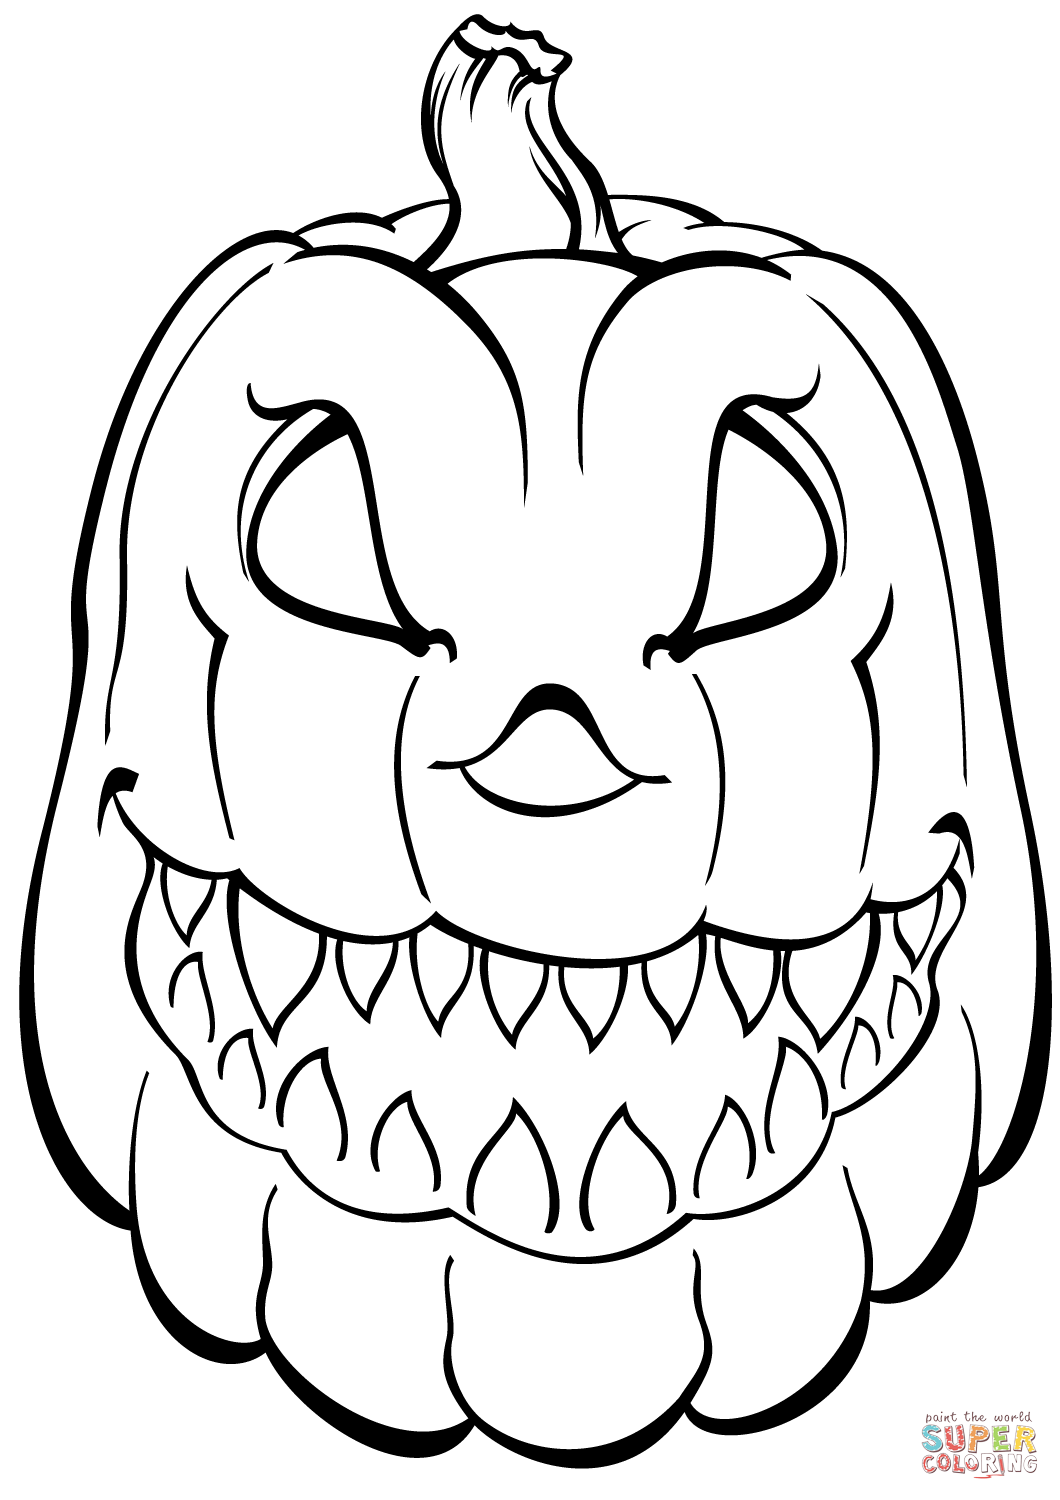 pumpkins coloring pages top 10 free printable halloween pumpkin coloring pages online coloring pumpkins pages